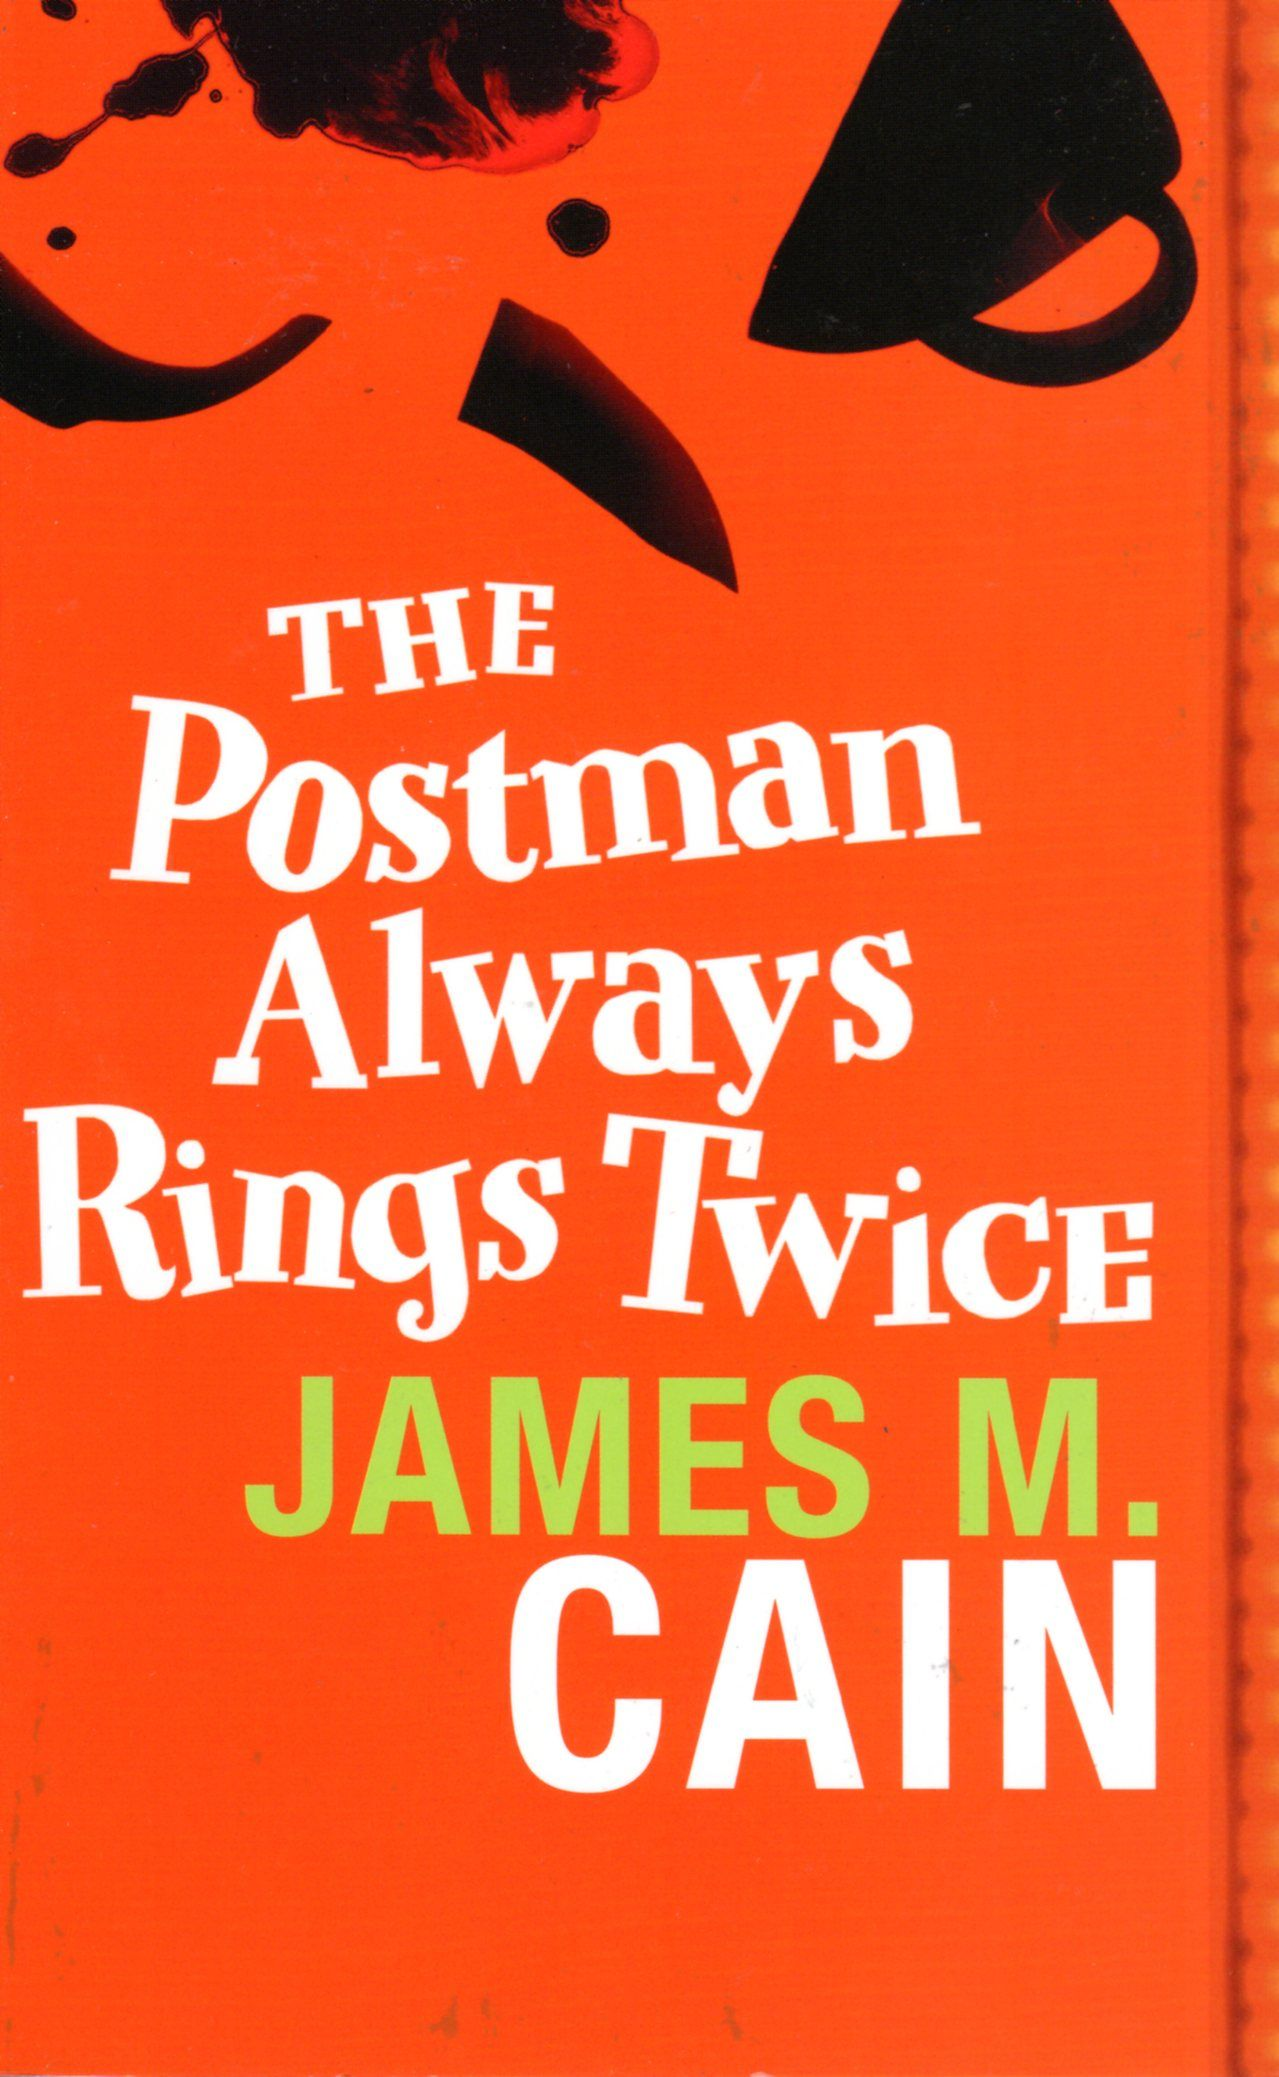 The Postman Always Rings Twice James M. Cain Used